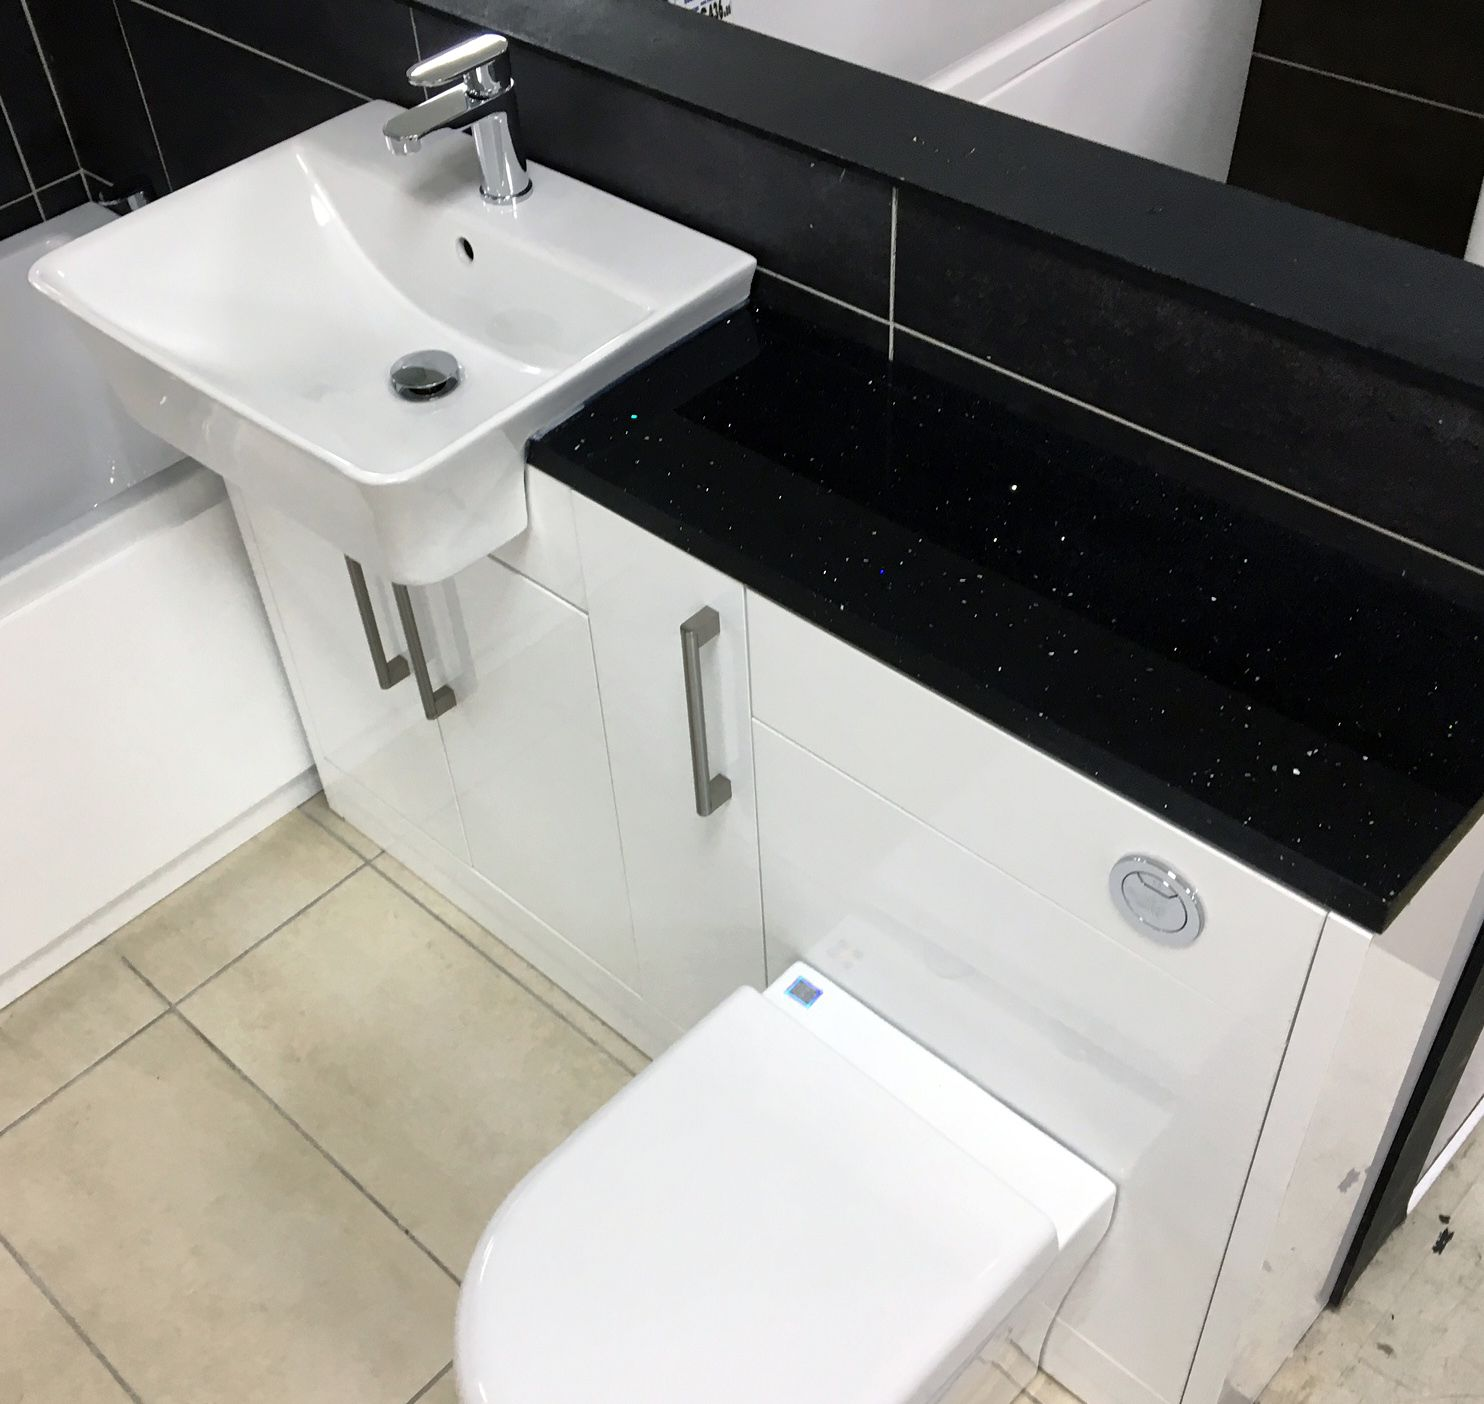 Gem granite bathrooms - Our Gems Bespoke Bathroom Furniture Is Manufactured Locally In The Uk And Selected Sets Come